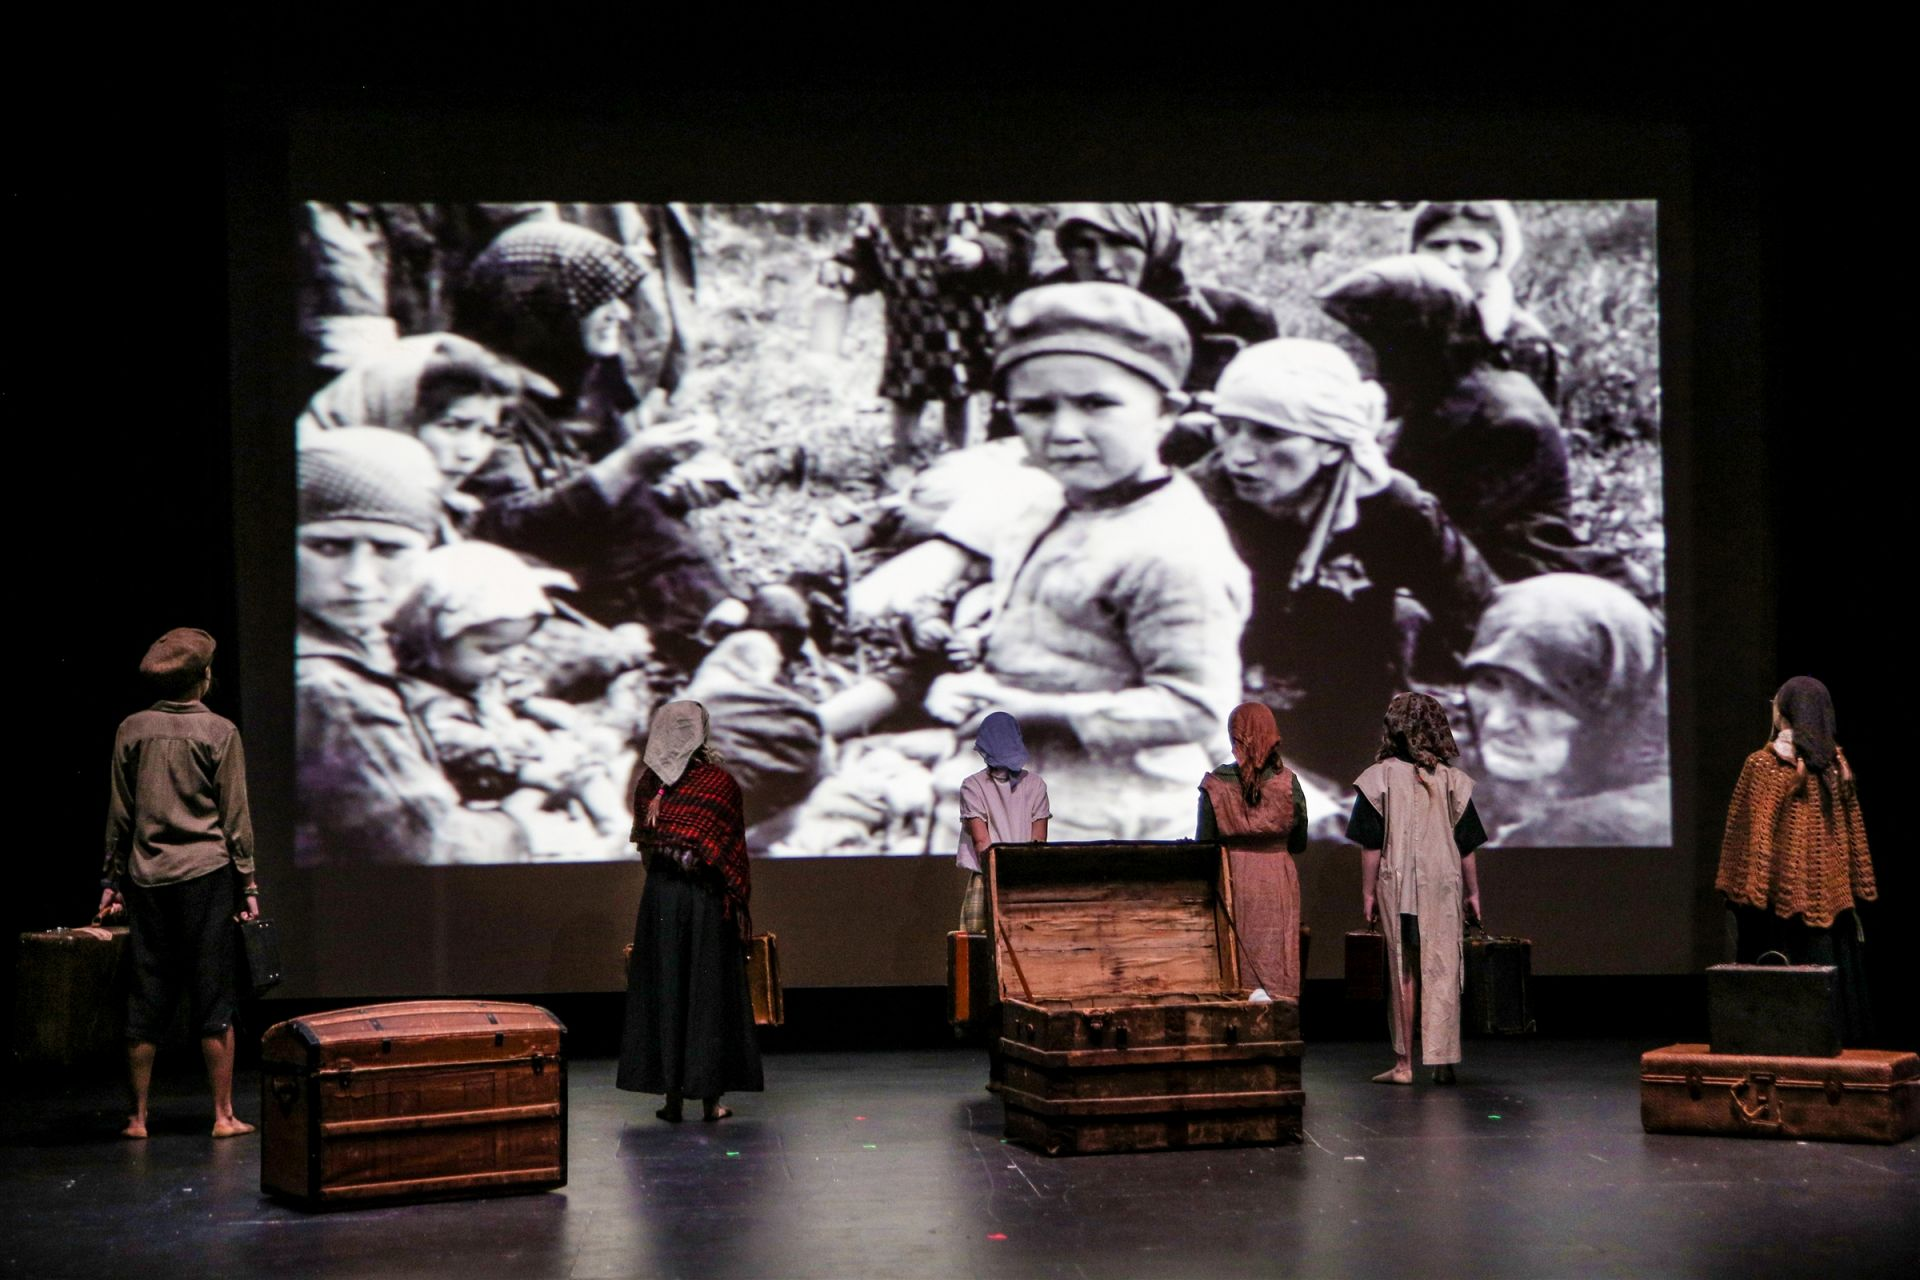 For the holocaust drama I Never Saw Another Butterfly, the Tech Crew projected powerful images